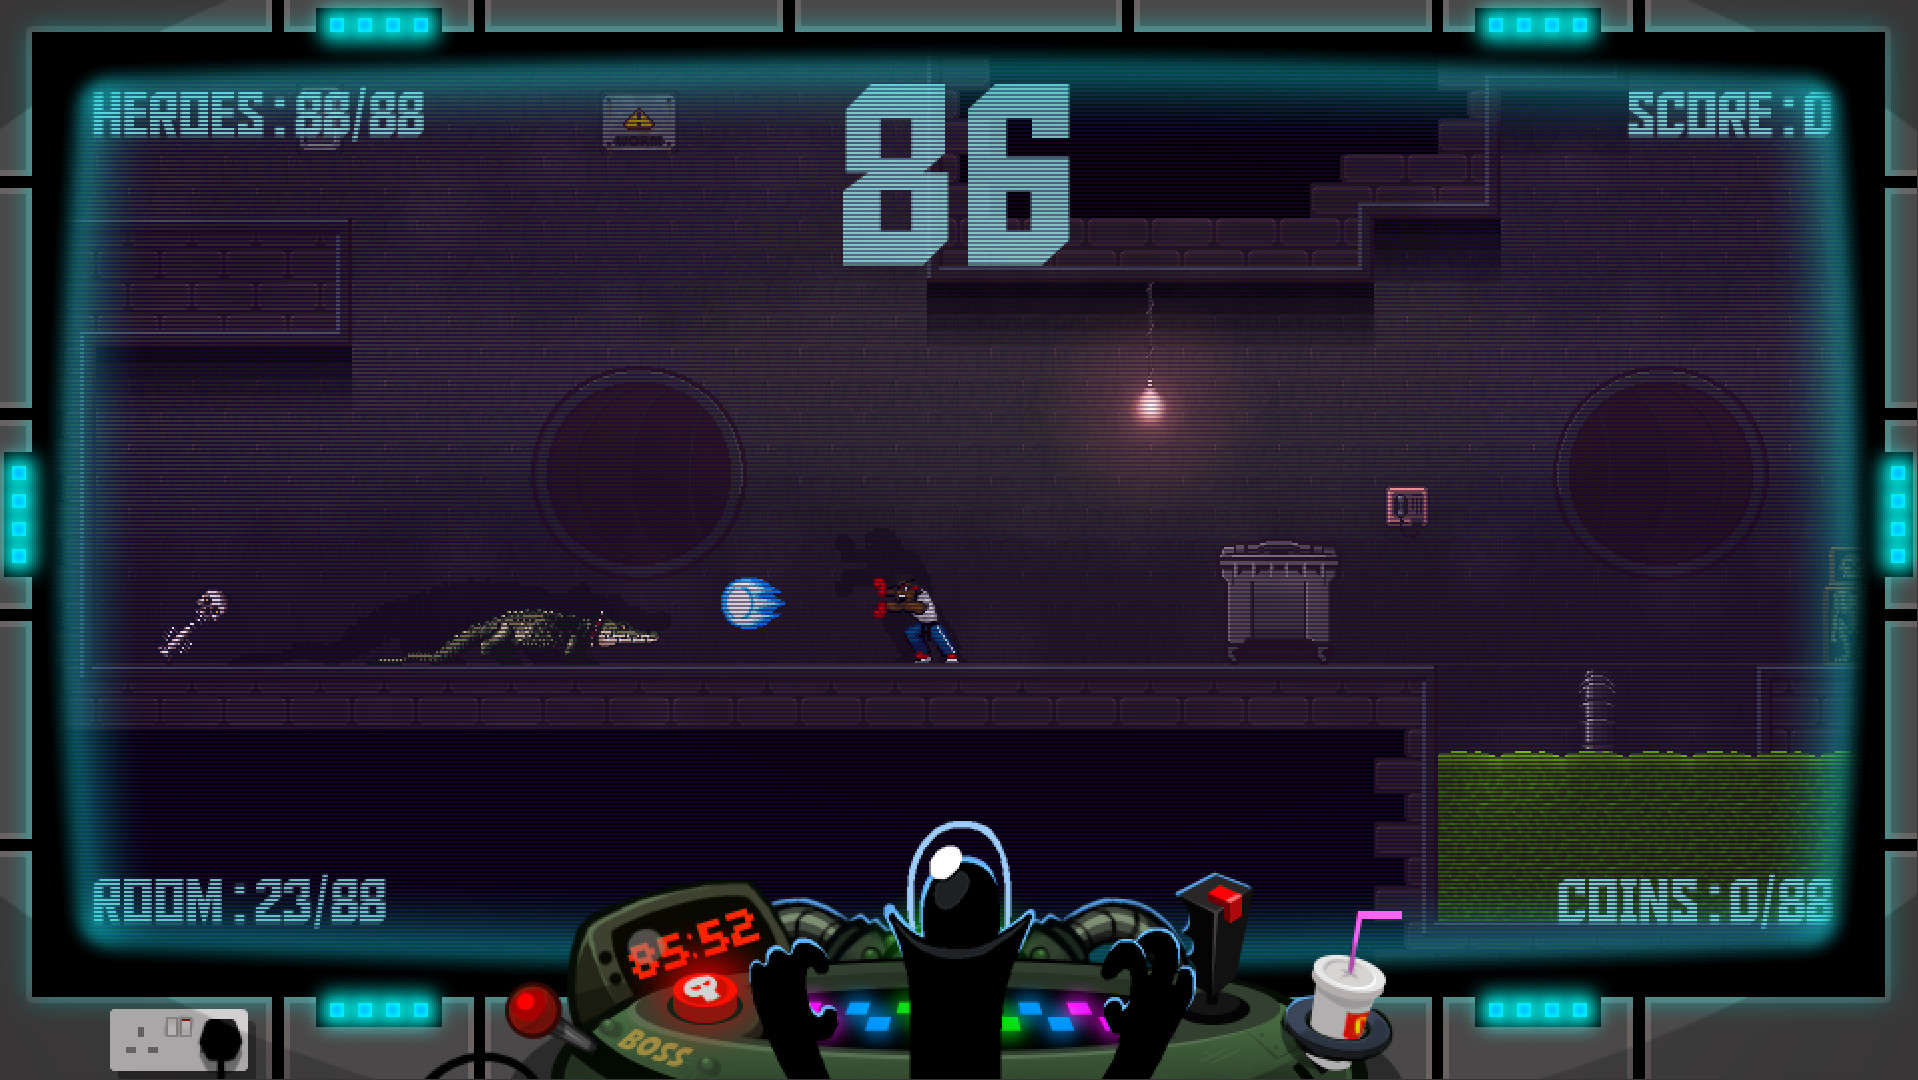 88 Heroes Screenshot 3